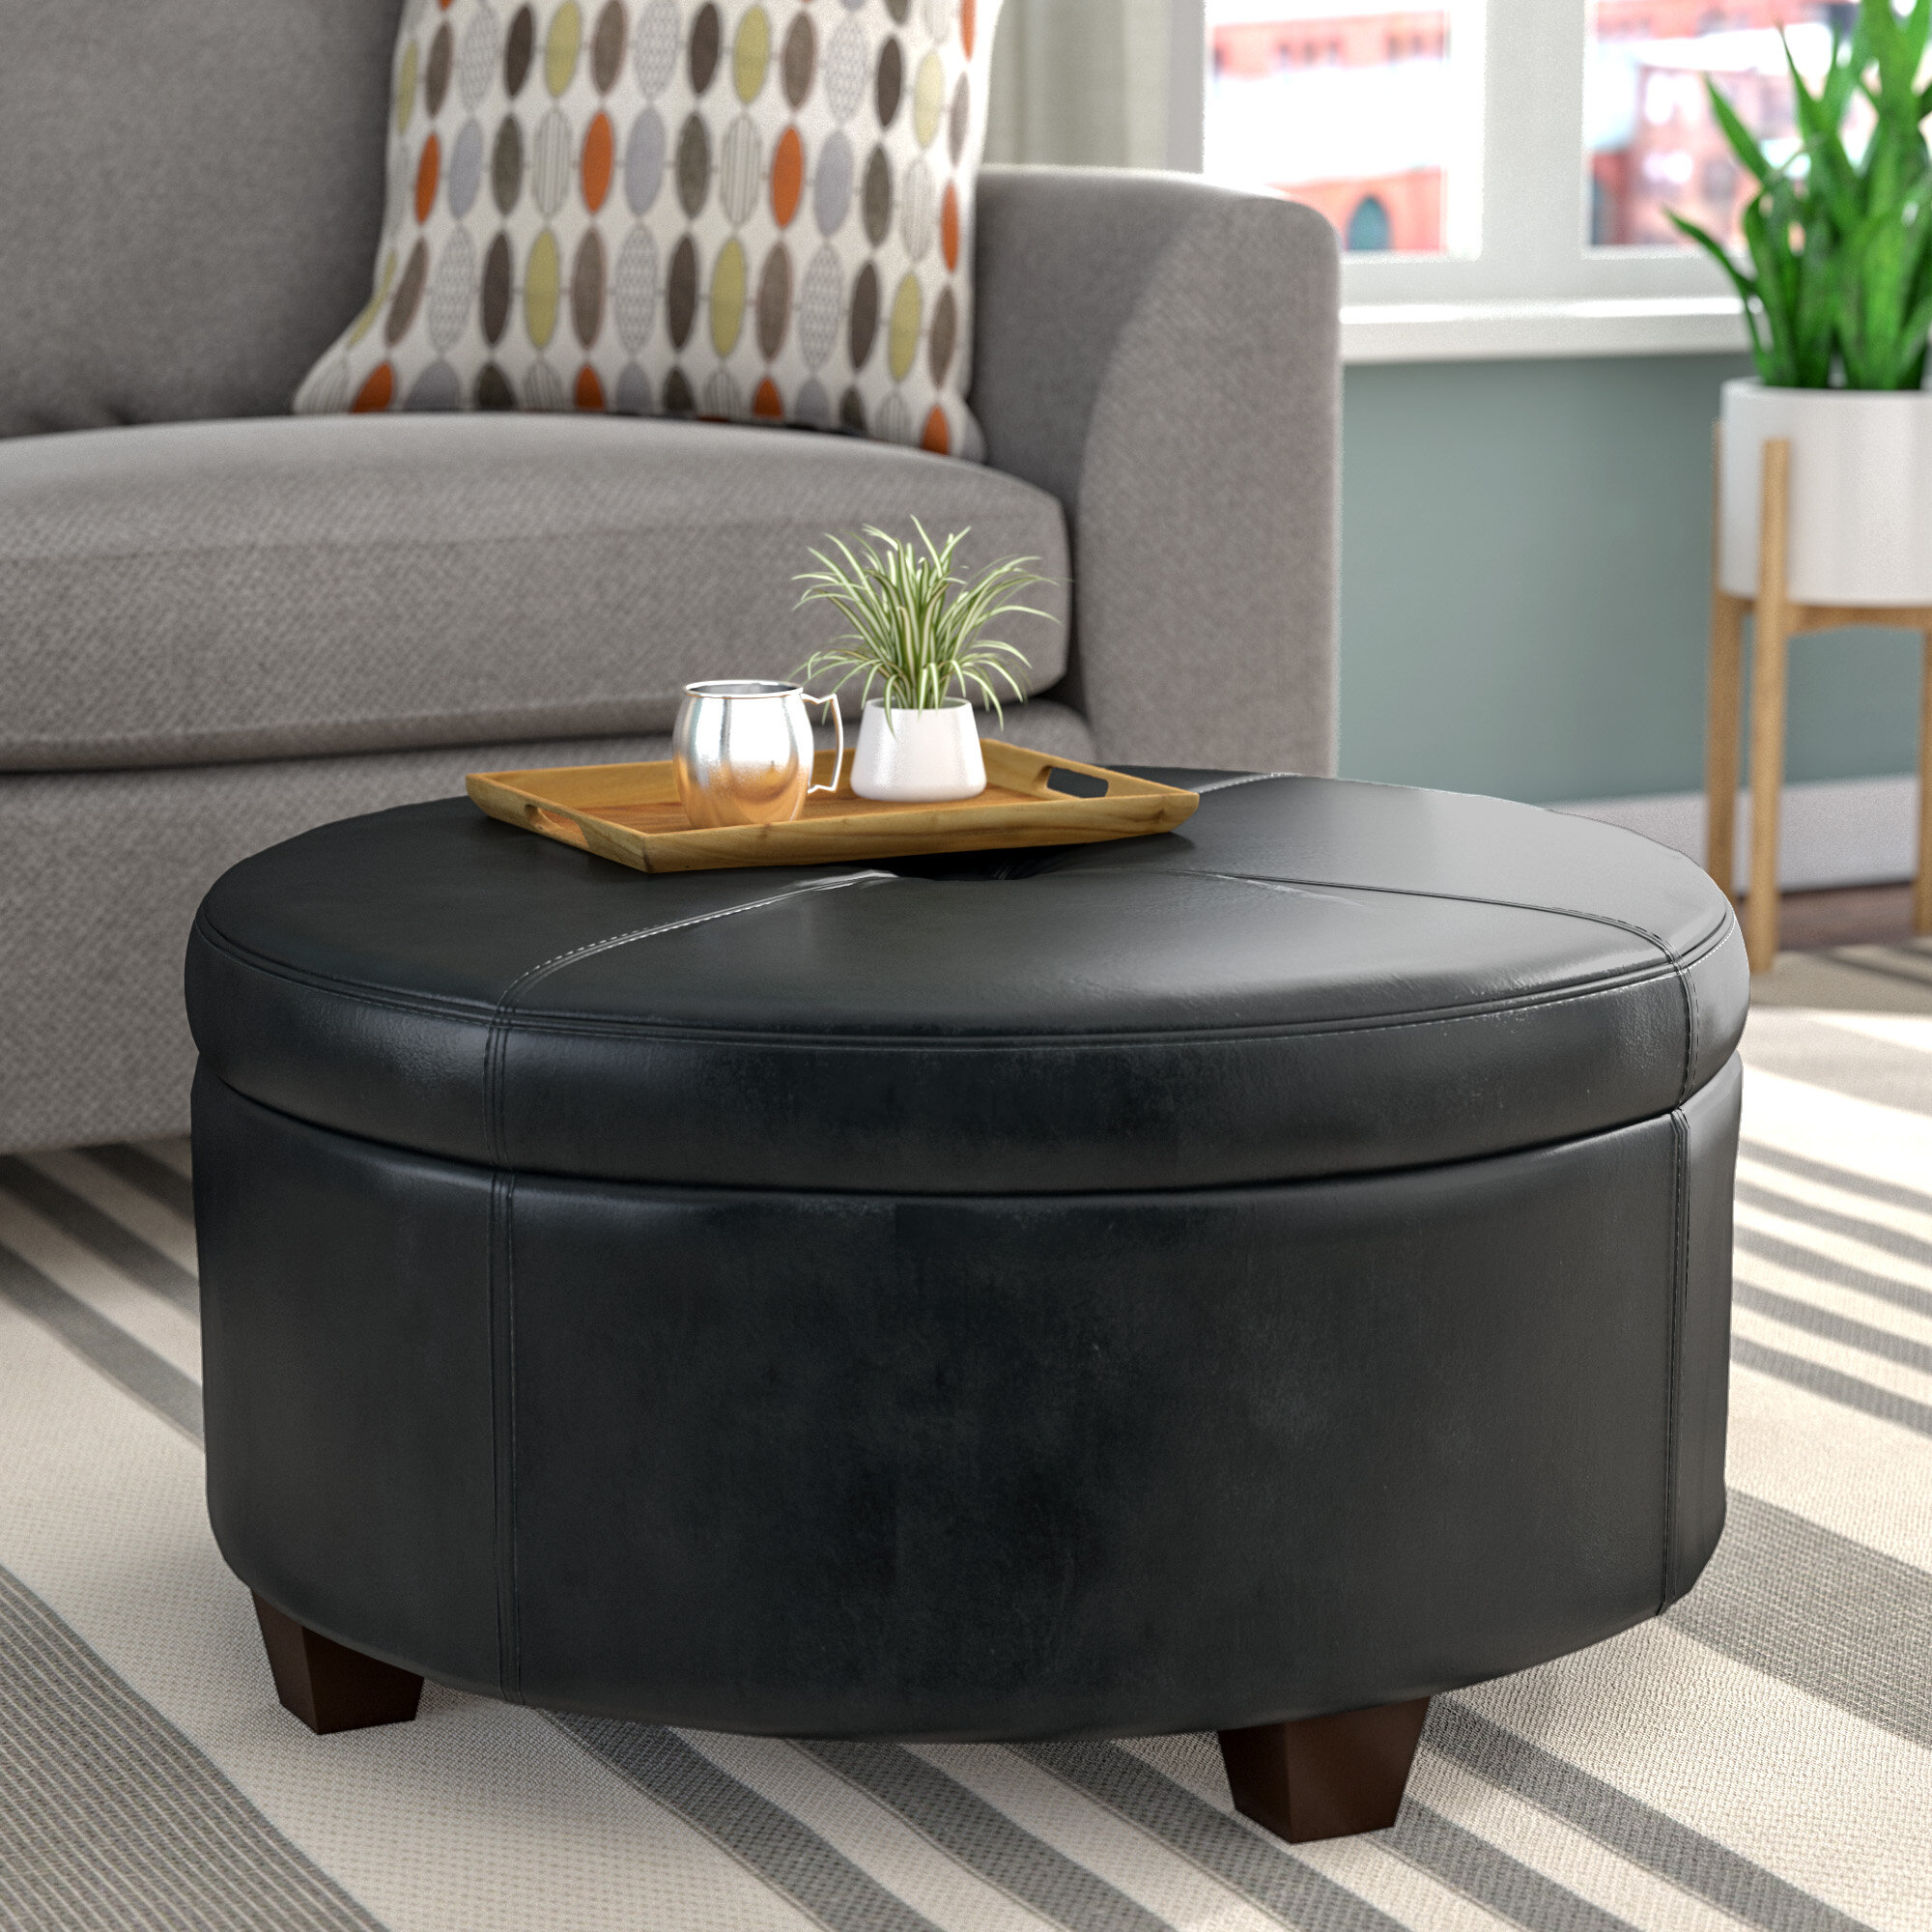 twin round patterned side brown fabric design ideas wooden lamp cocktail black rug wool table home features white polished furniture armchair sofa beige inspiring rectangle leather floor ottoman